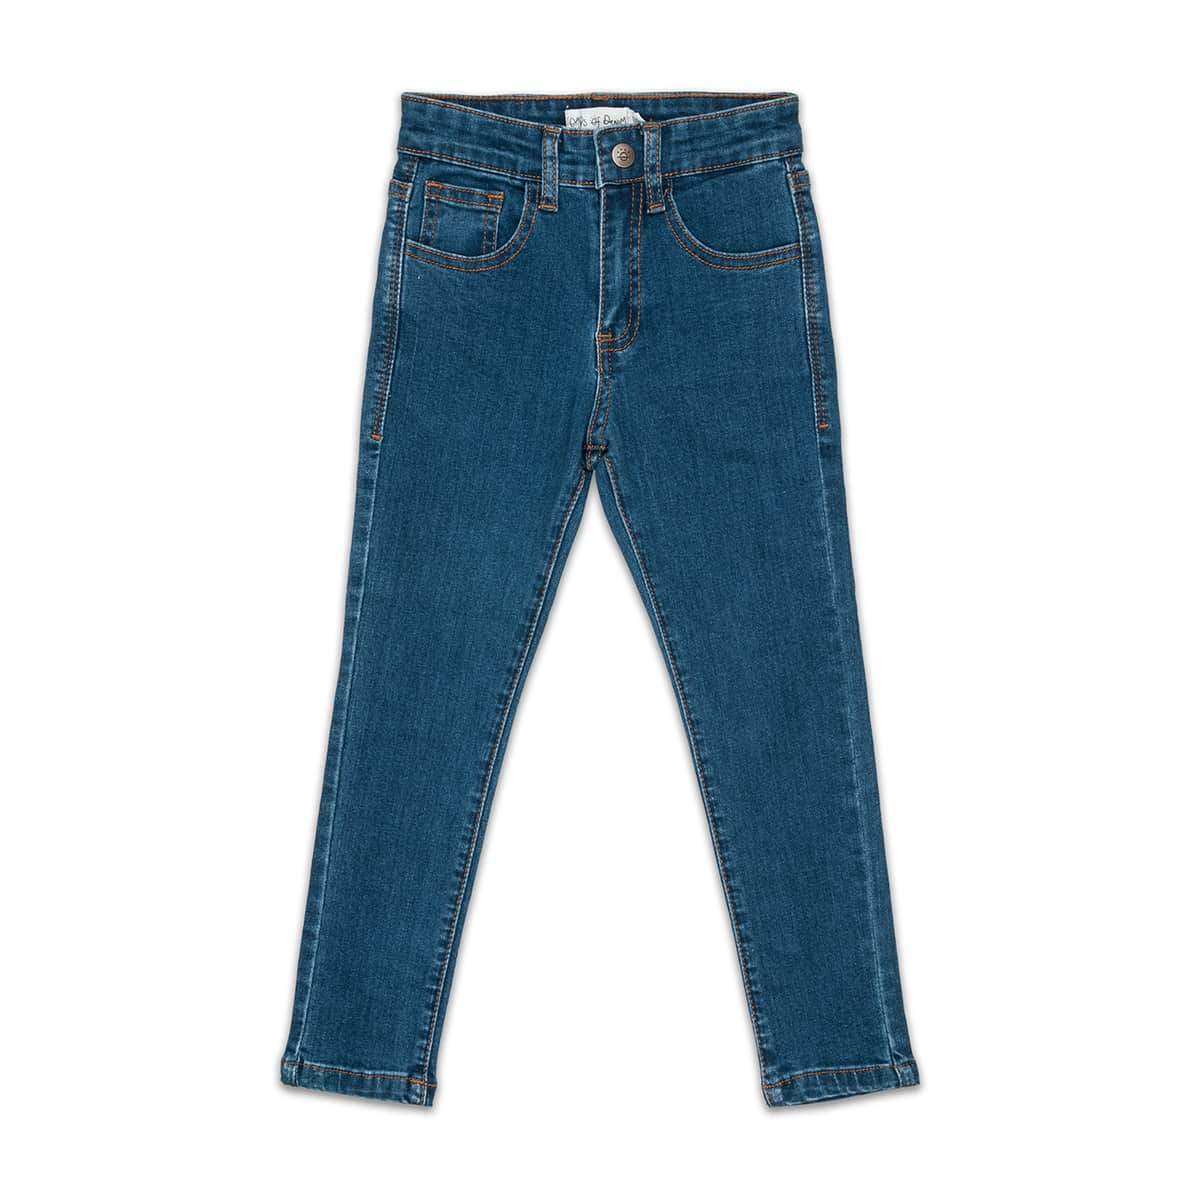 Days of Denim - Kids Skinny Jeans - Navy Wash - Front